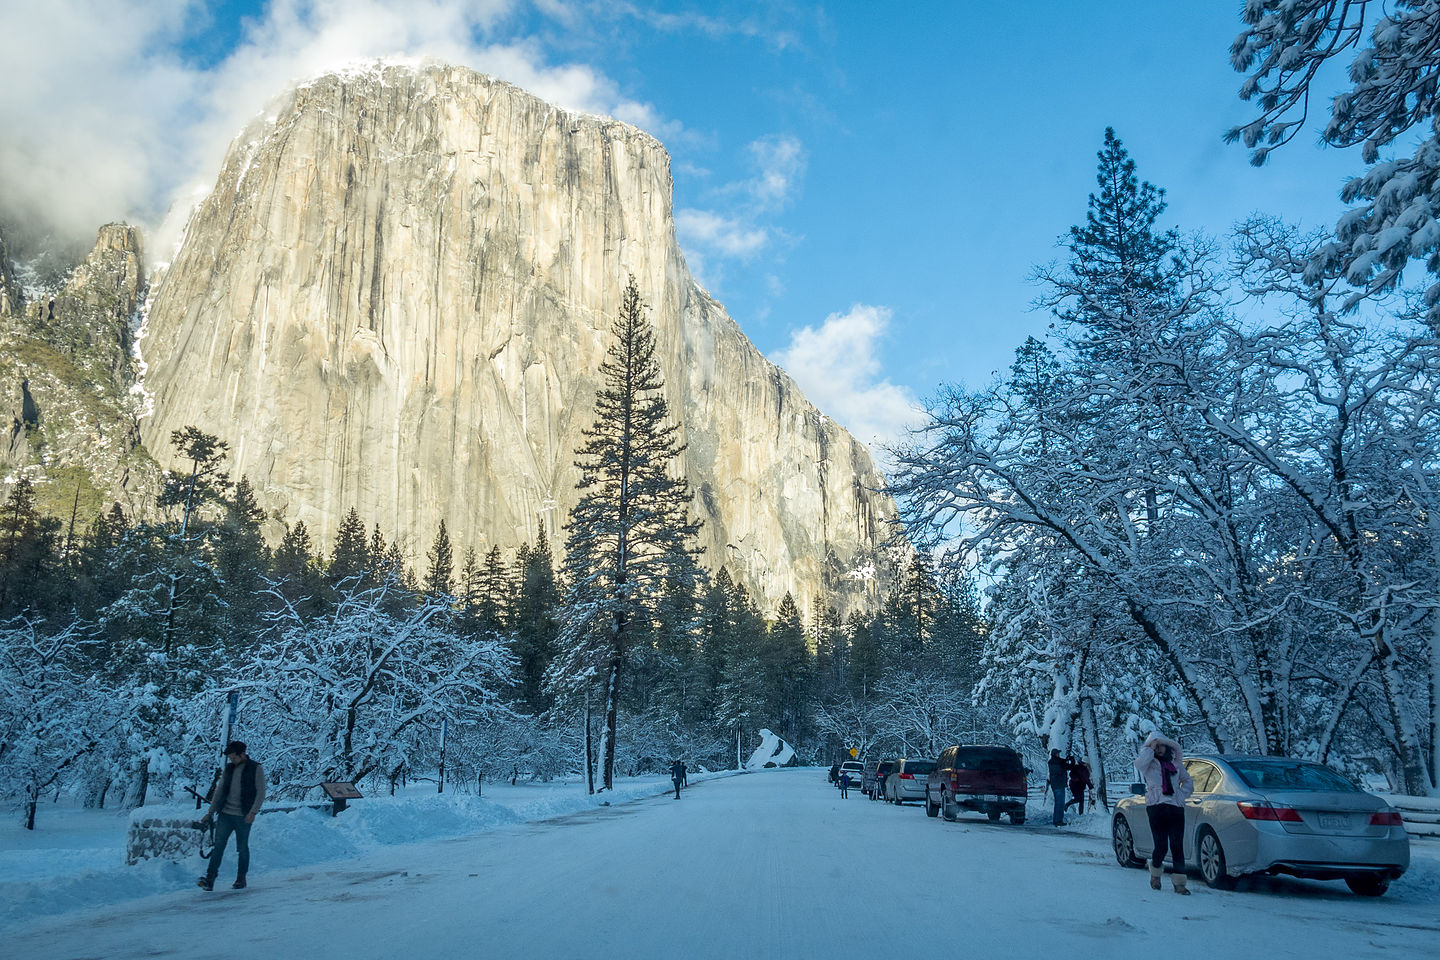 Arriving In Snow Covered Yosemite Valley Lolo S Extreme